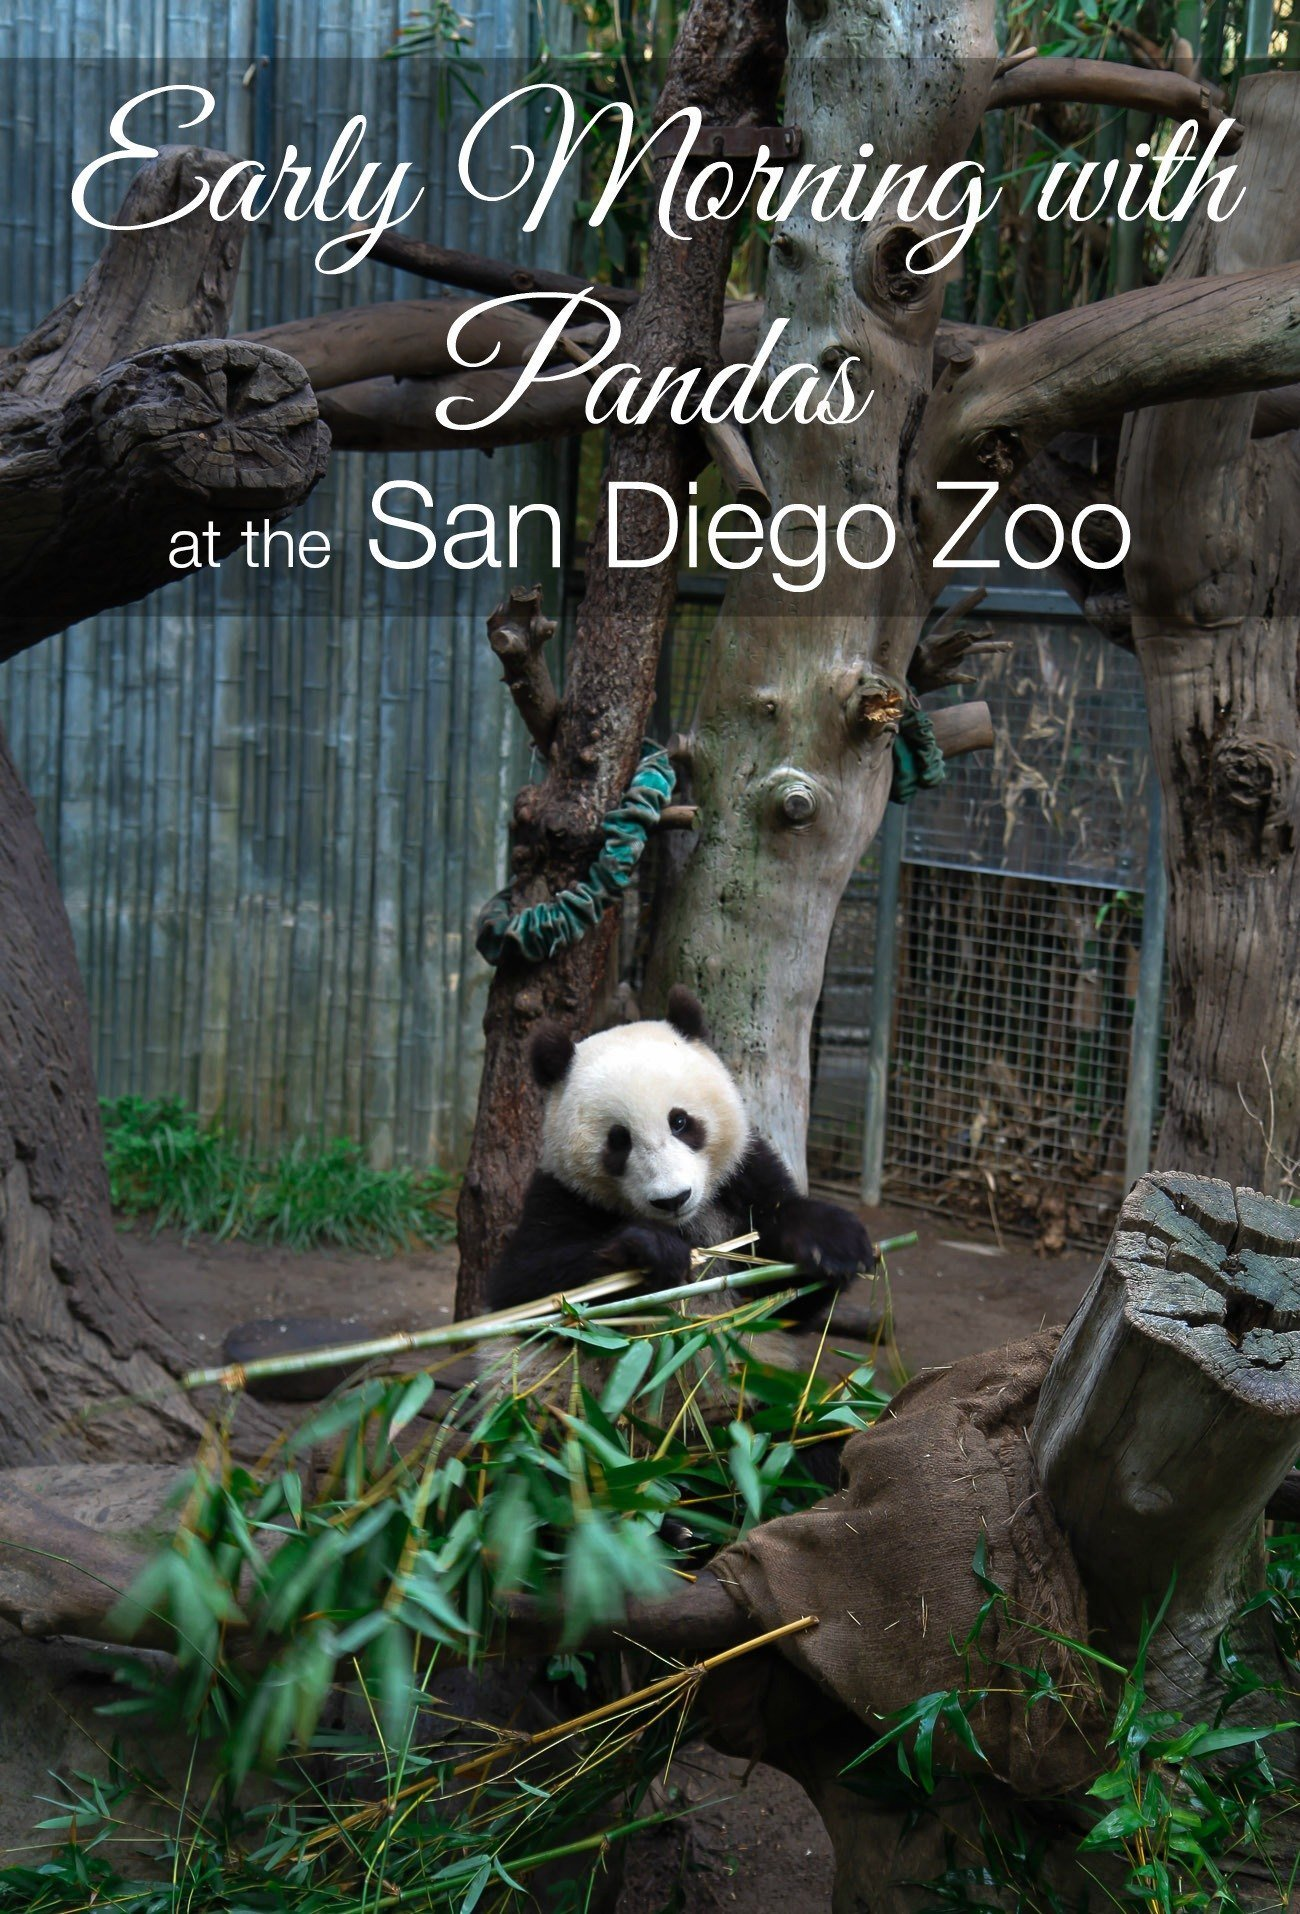 Visit the pandas before the San Diego Zoo opens